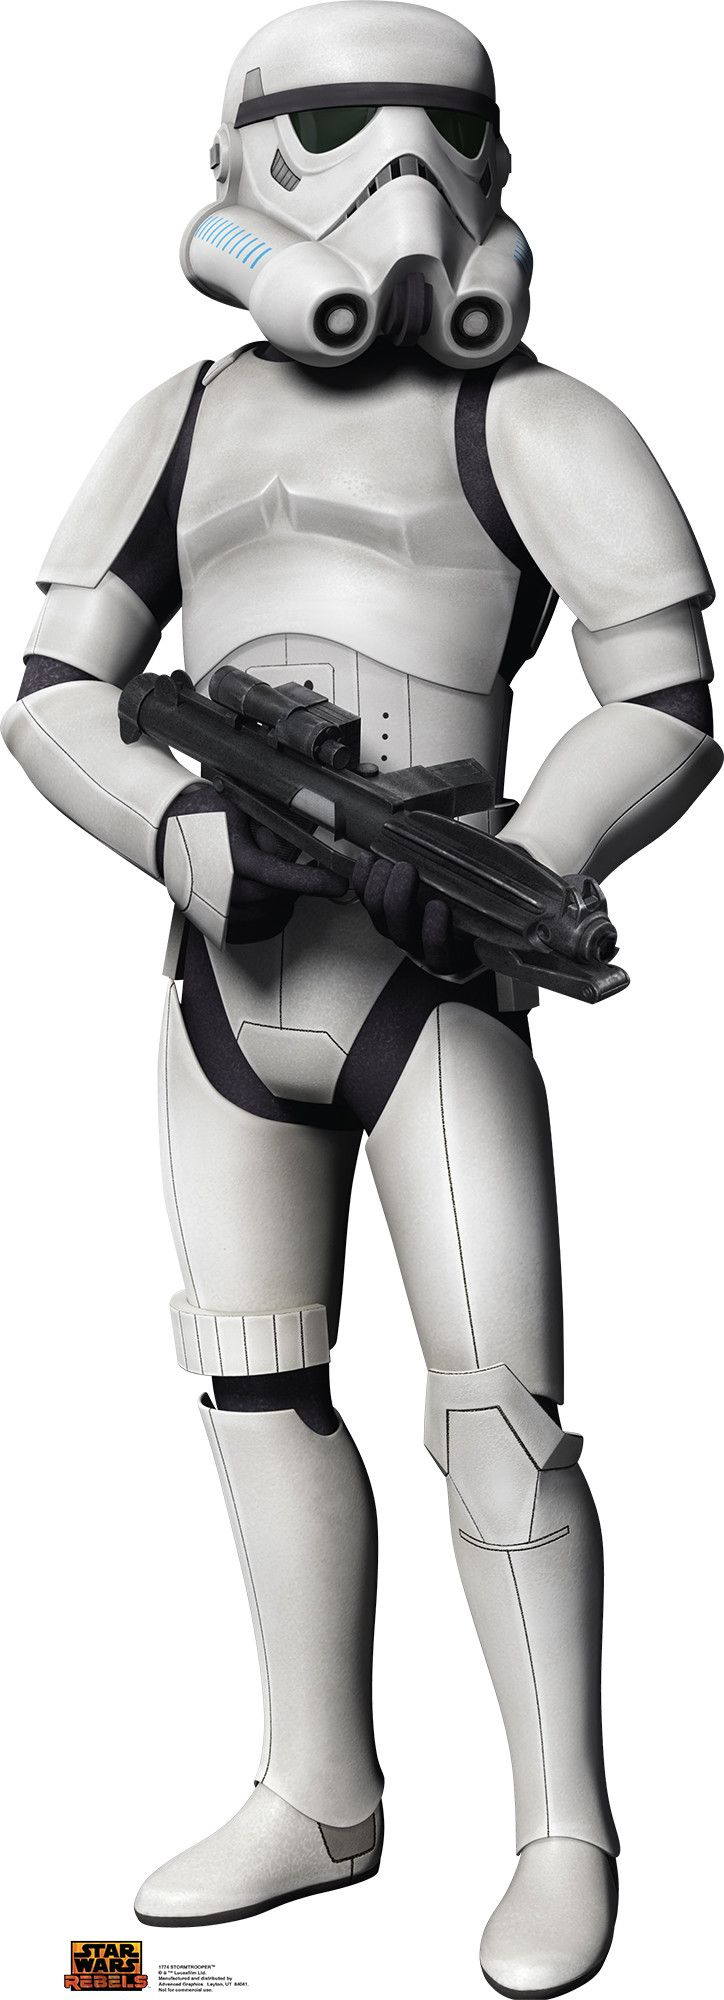 Star Wars Rebels Stormtrooper Cardboard Standup | Wayfair